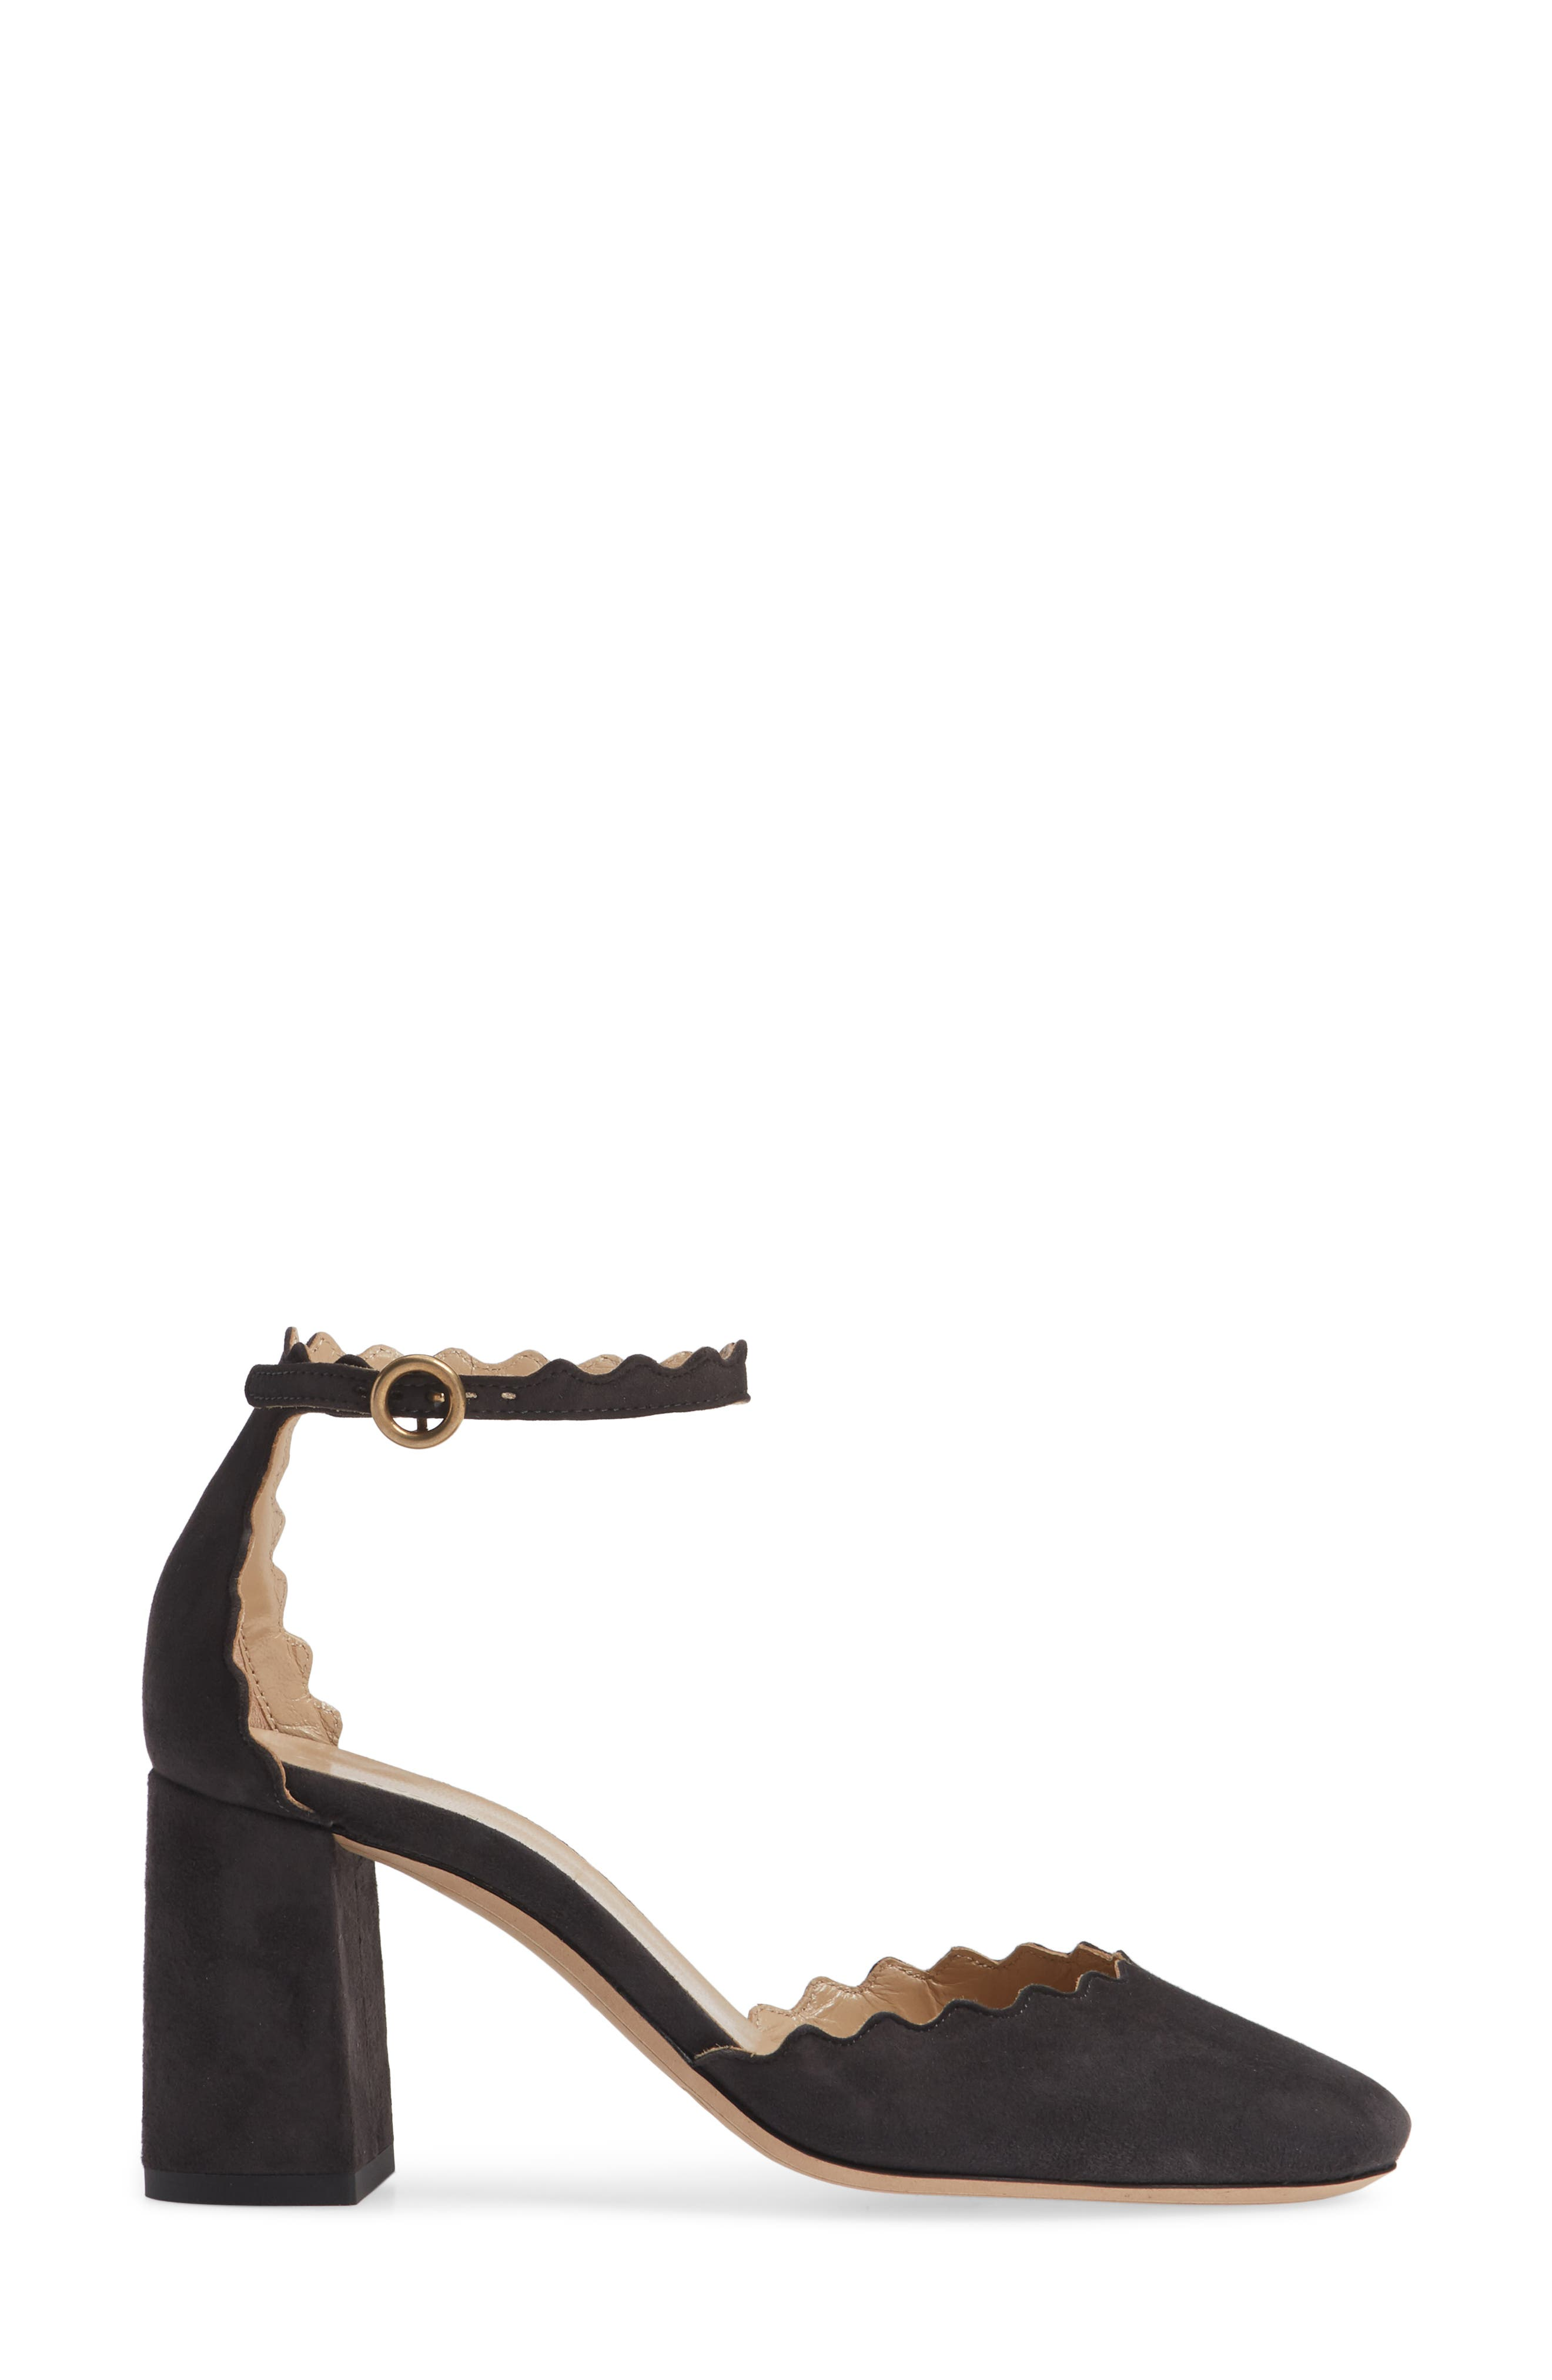 Scalloped Ankle Strap d'Orsay Pump,                             Alternate thumbnail 3, color,                             CHARCOAL BLACK